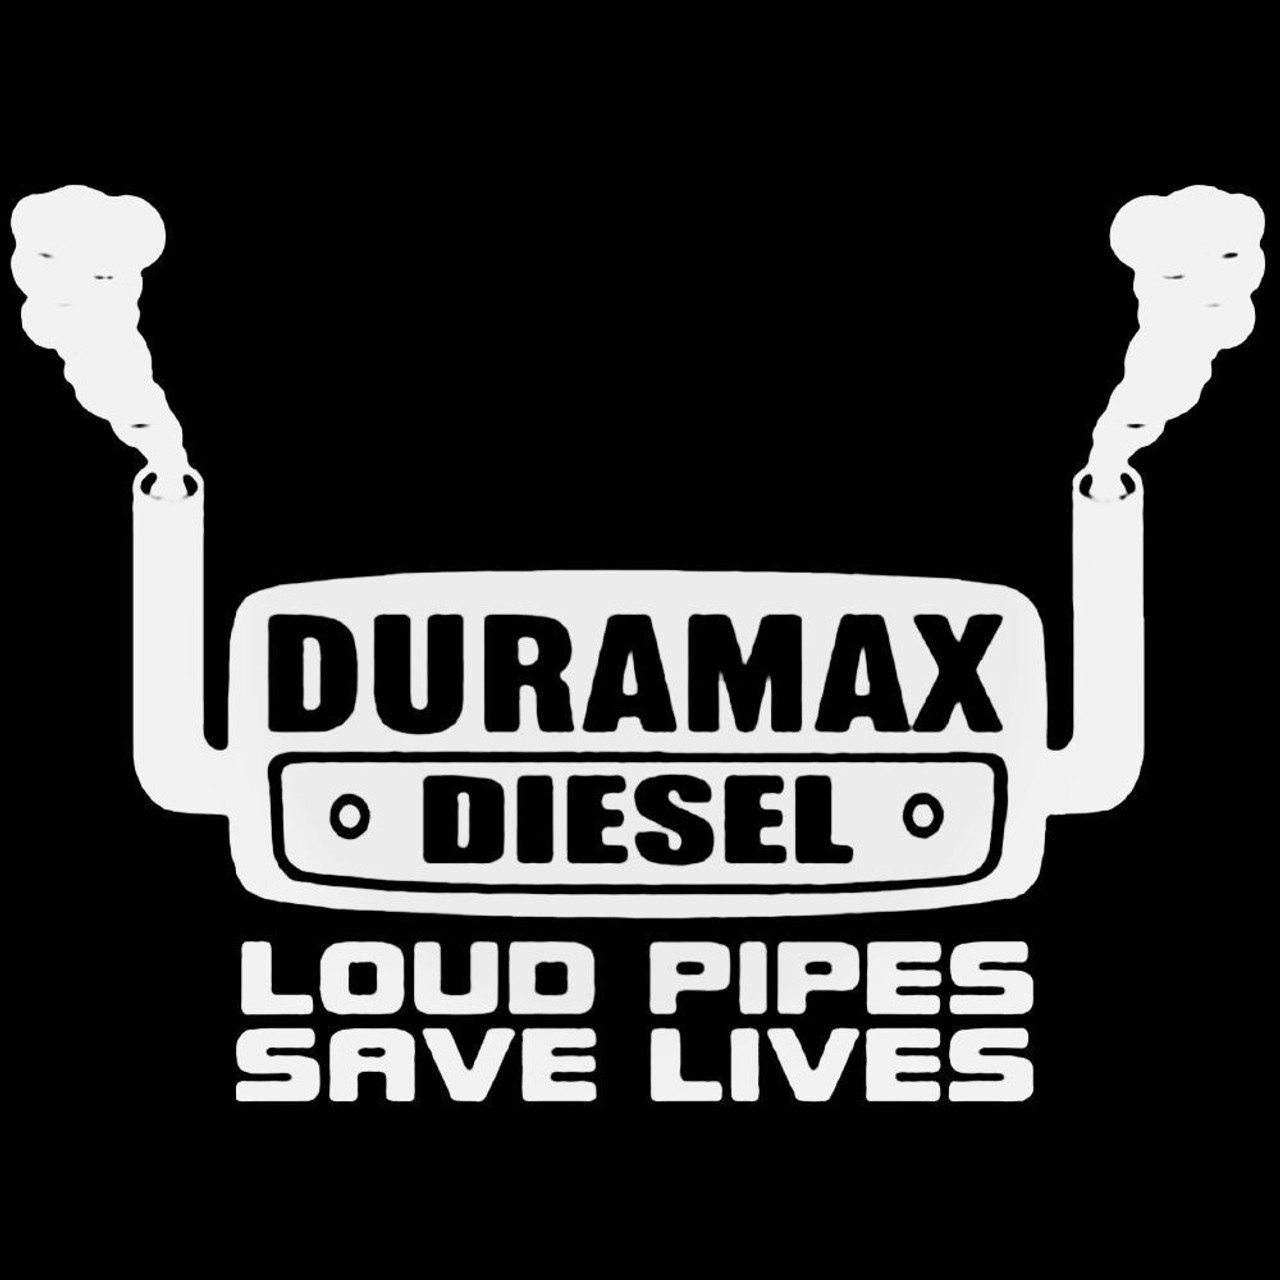 Window Toolbox Stickers #595 Duramax Diesel Loud Pipes Save Lives Sticker